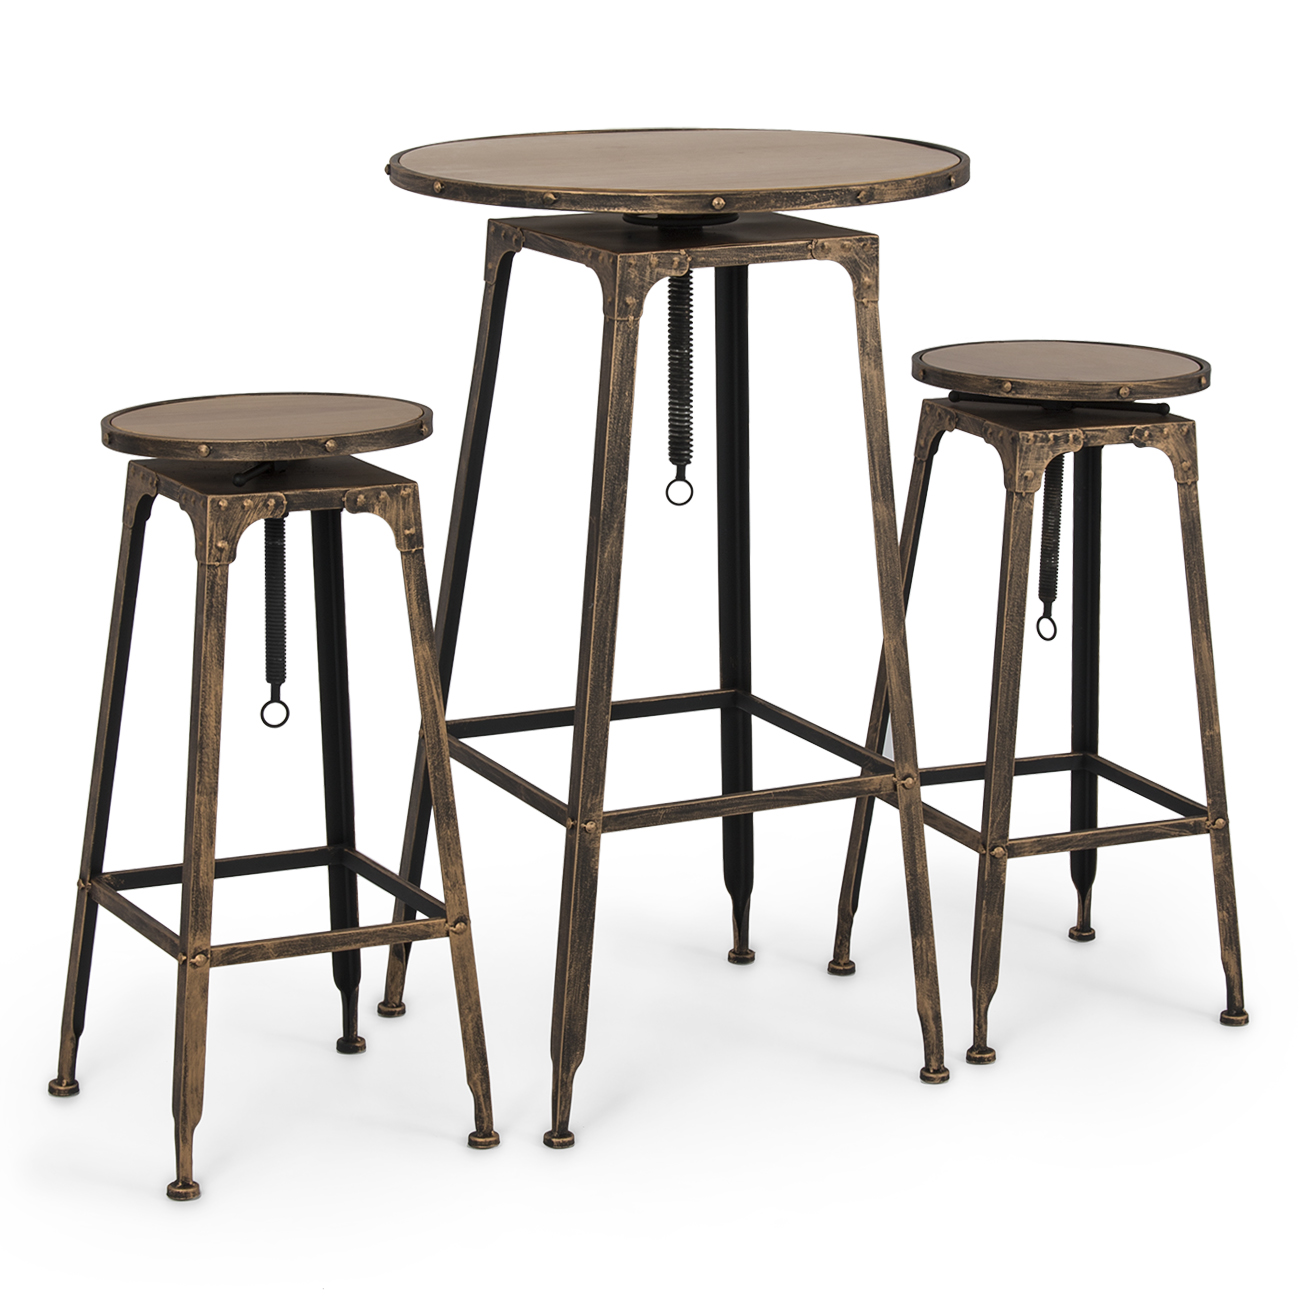 Belleze 3pc Adjustable Pub Table And Stools Vintage